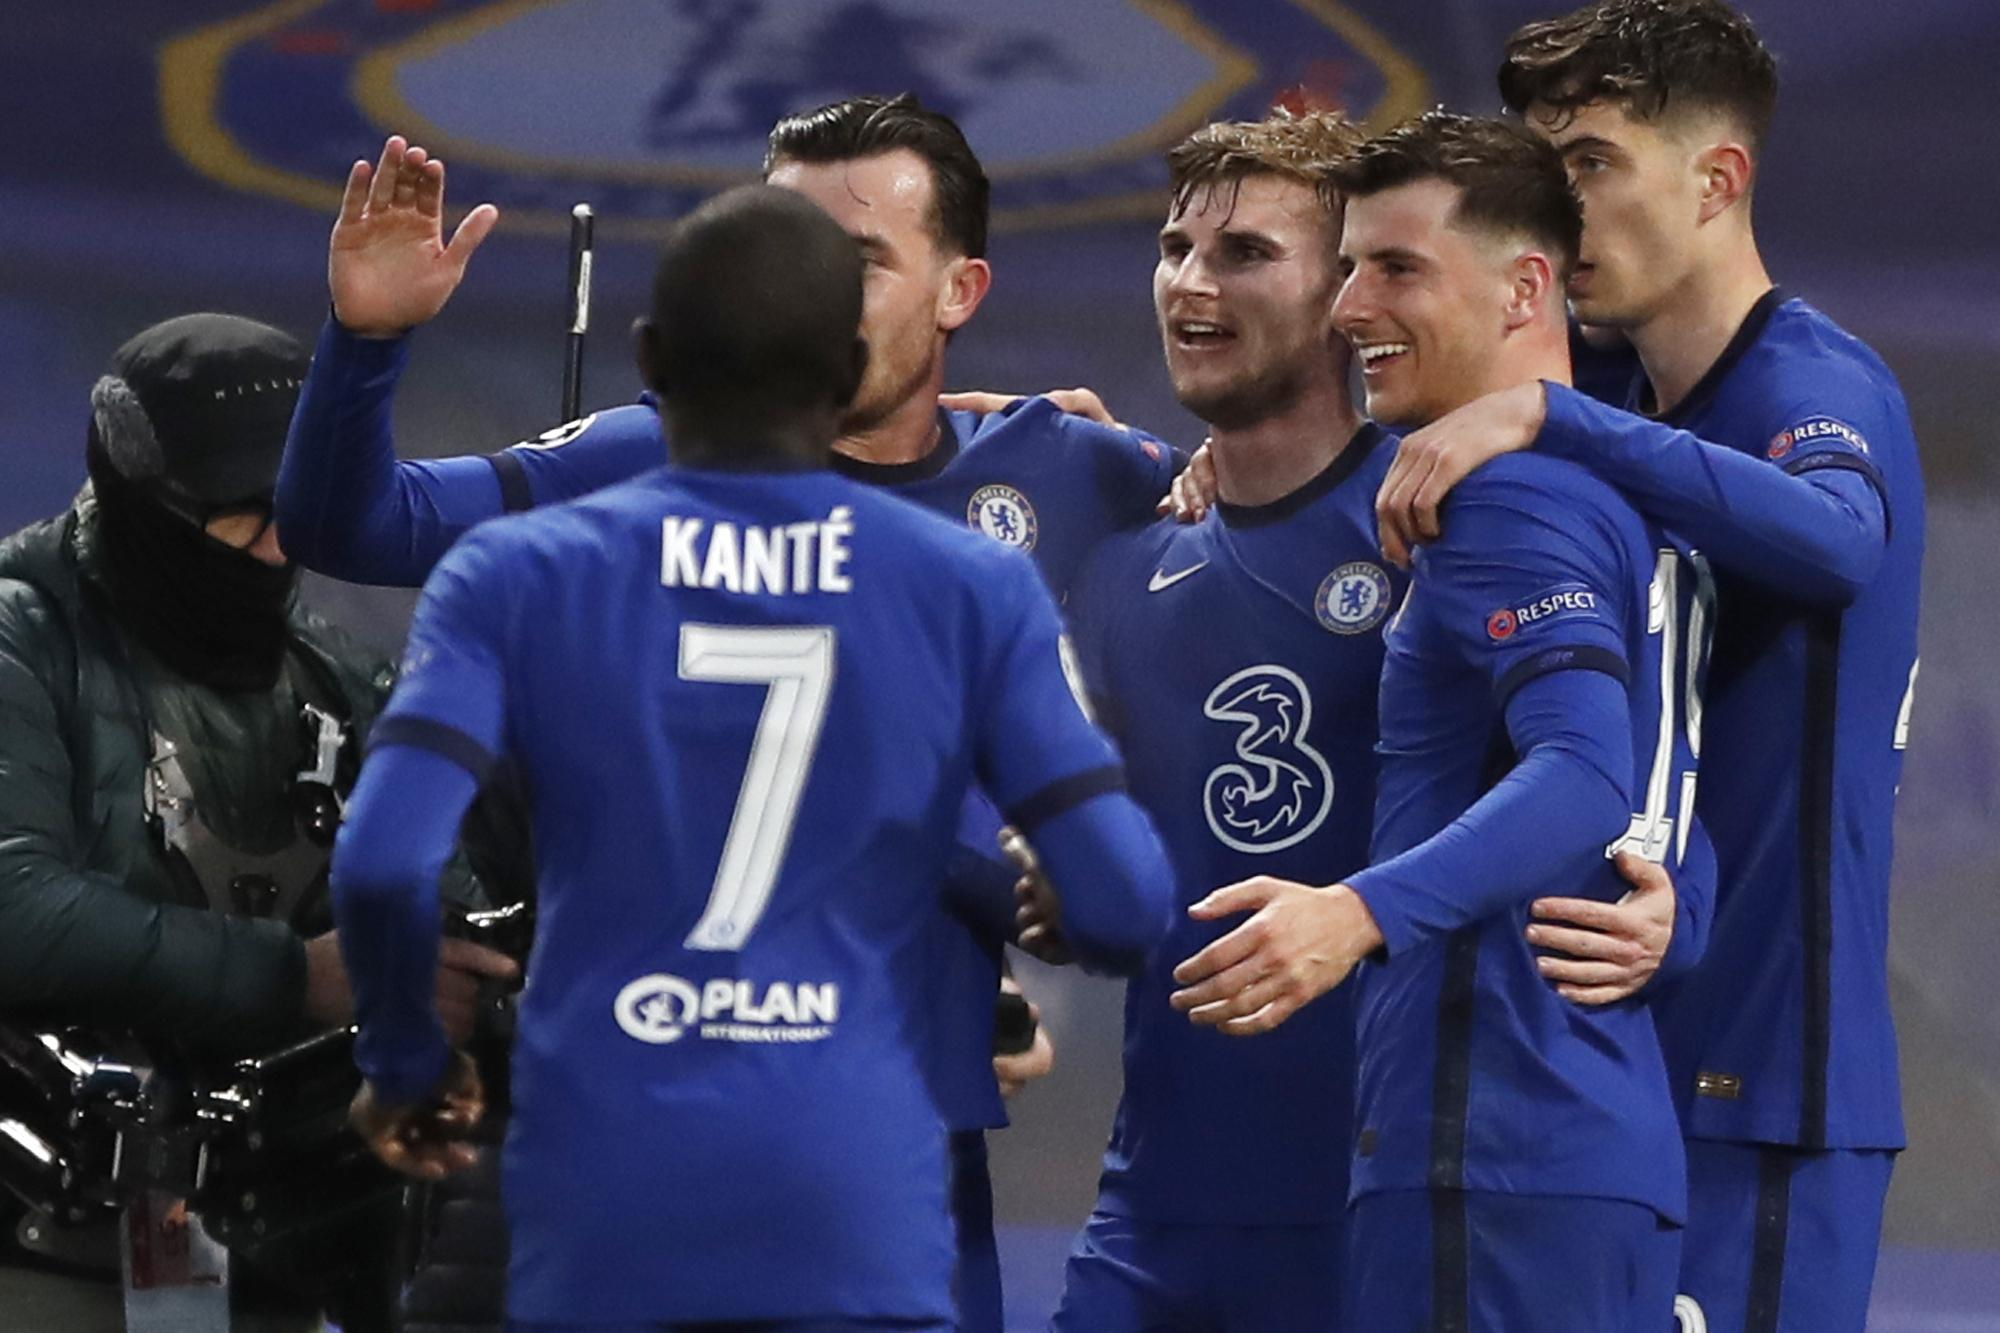 Chelsea ousts Madrid to set up all-English CL final vs City